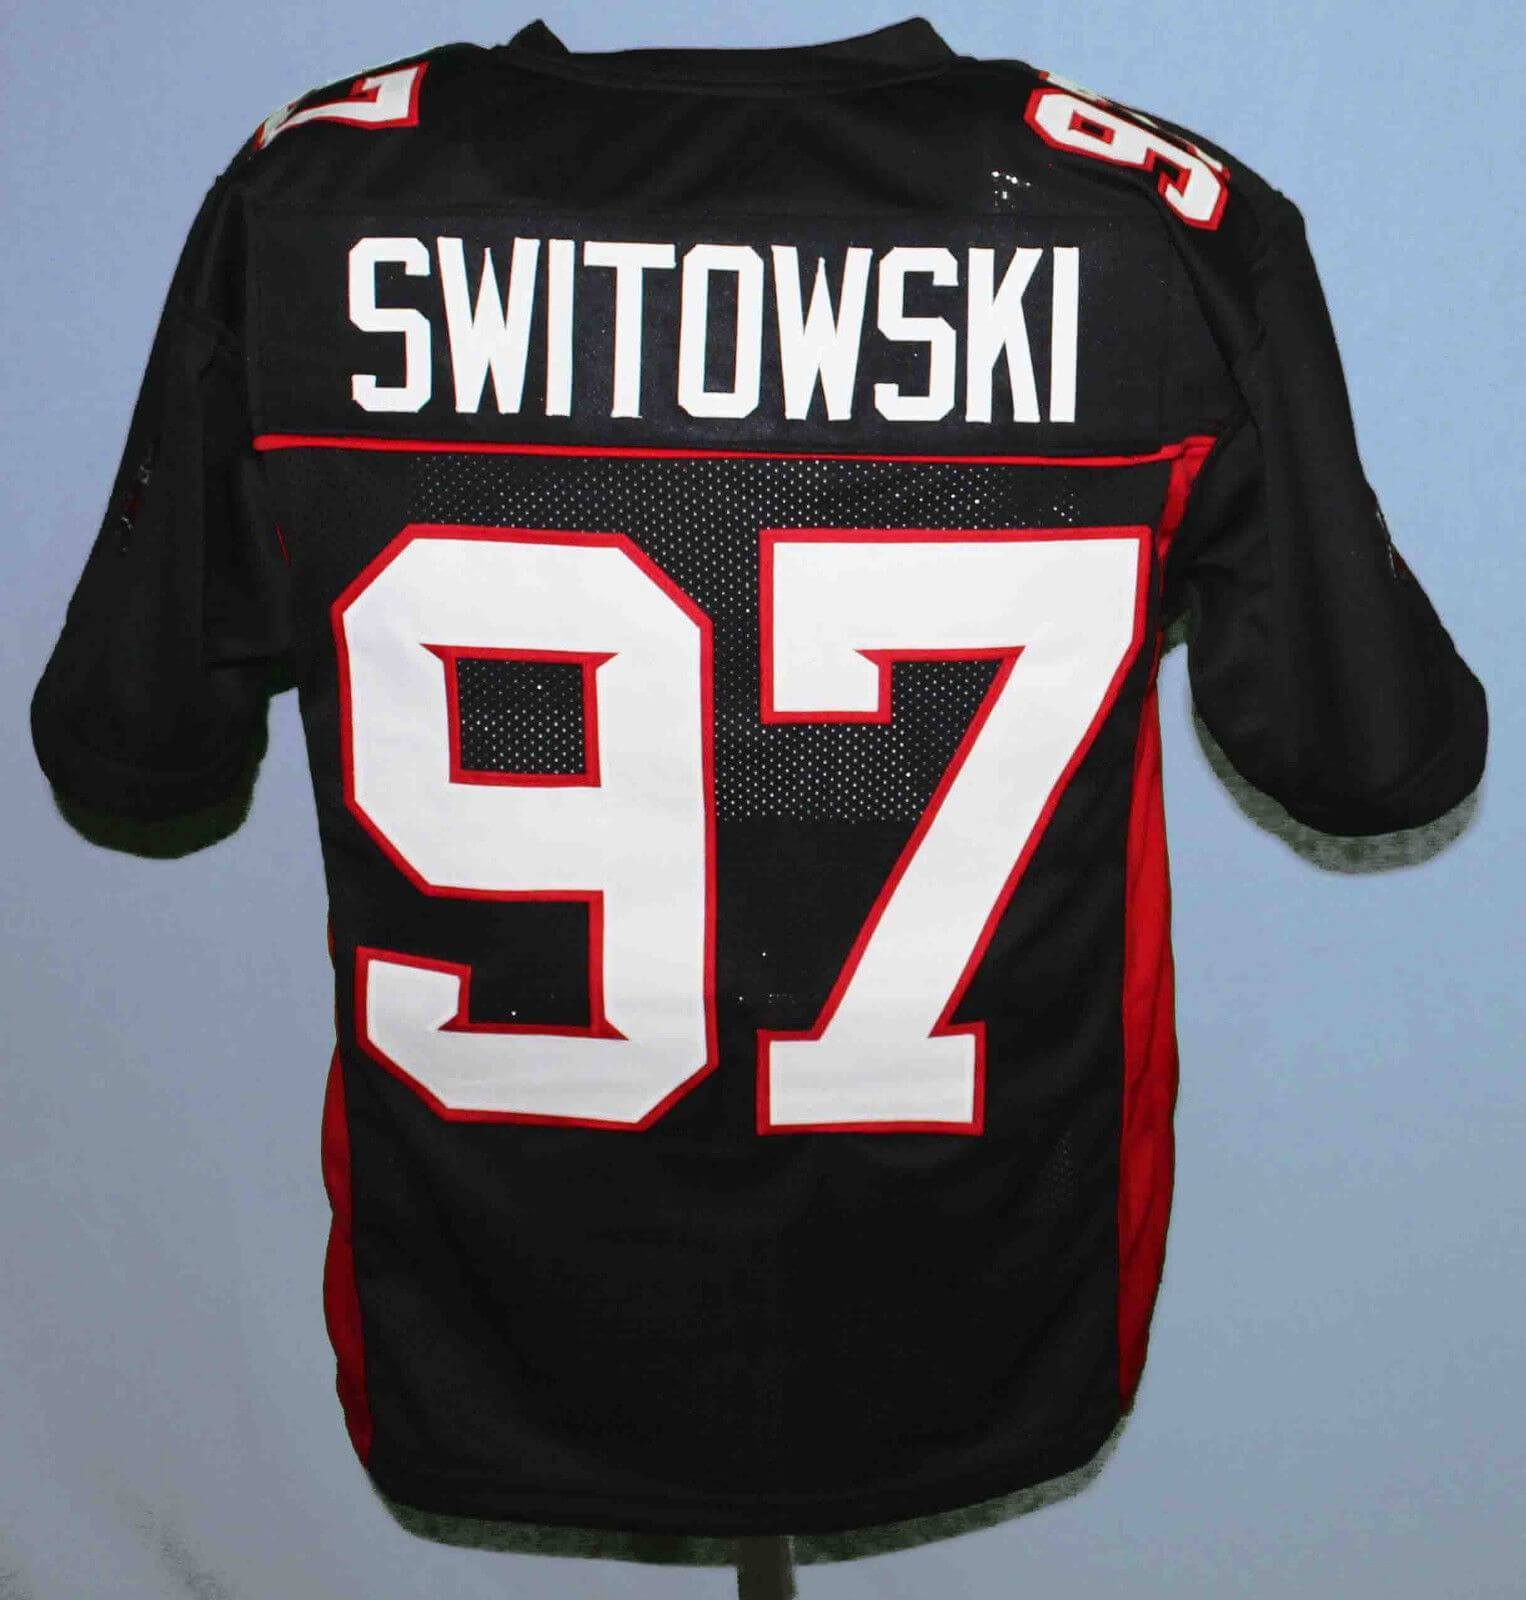 26bf86744 Mean machine switowski football jersey champ jpg 1526x1600 Mean machine  jersey